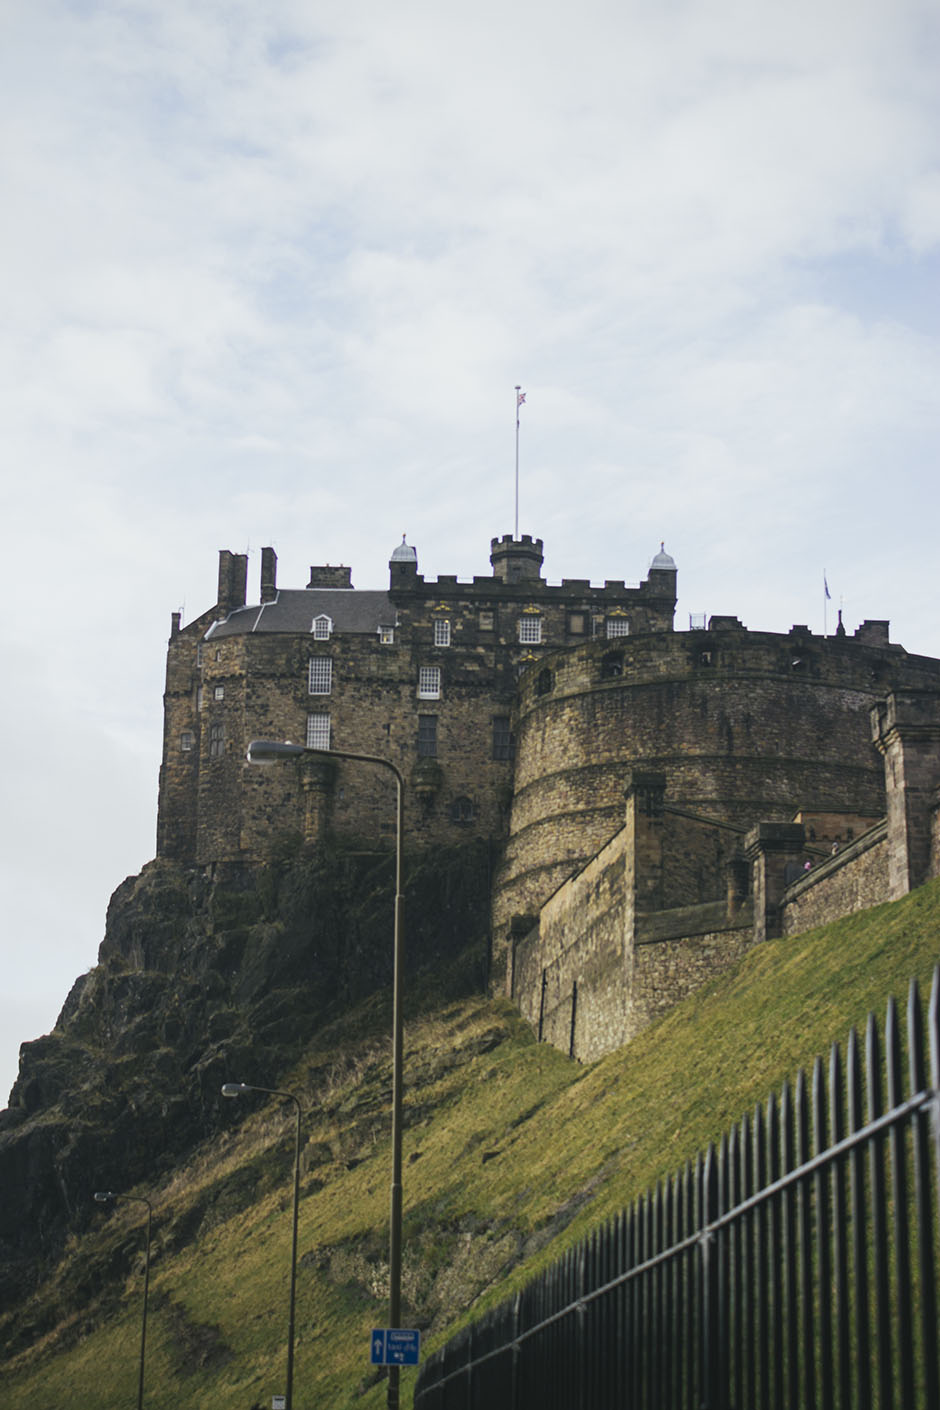 edinburgh castle again.